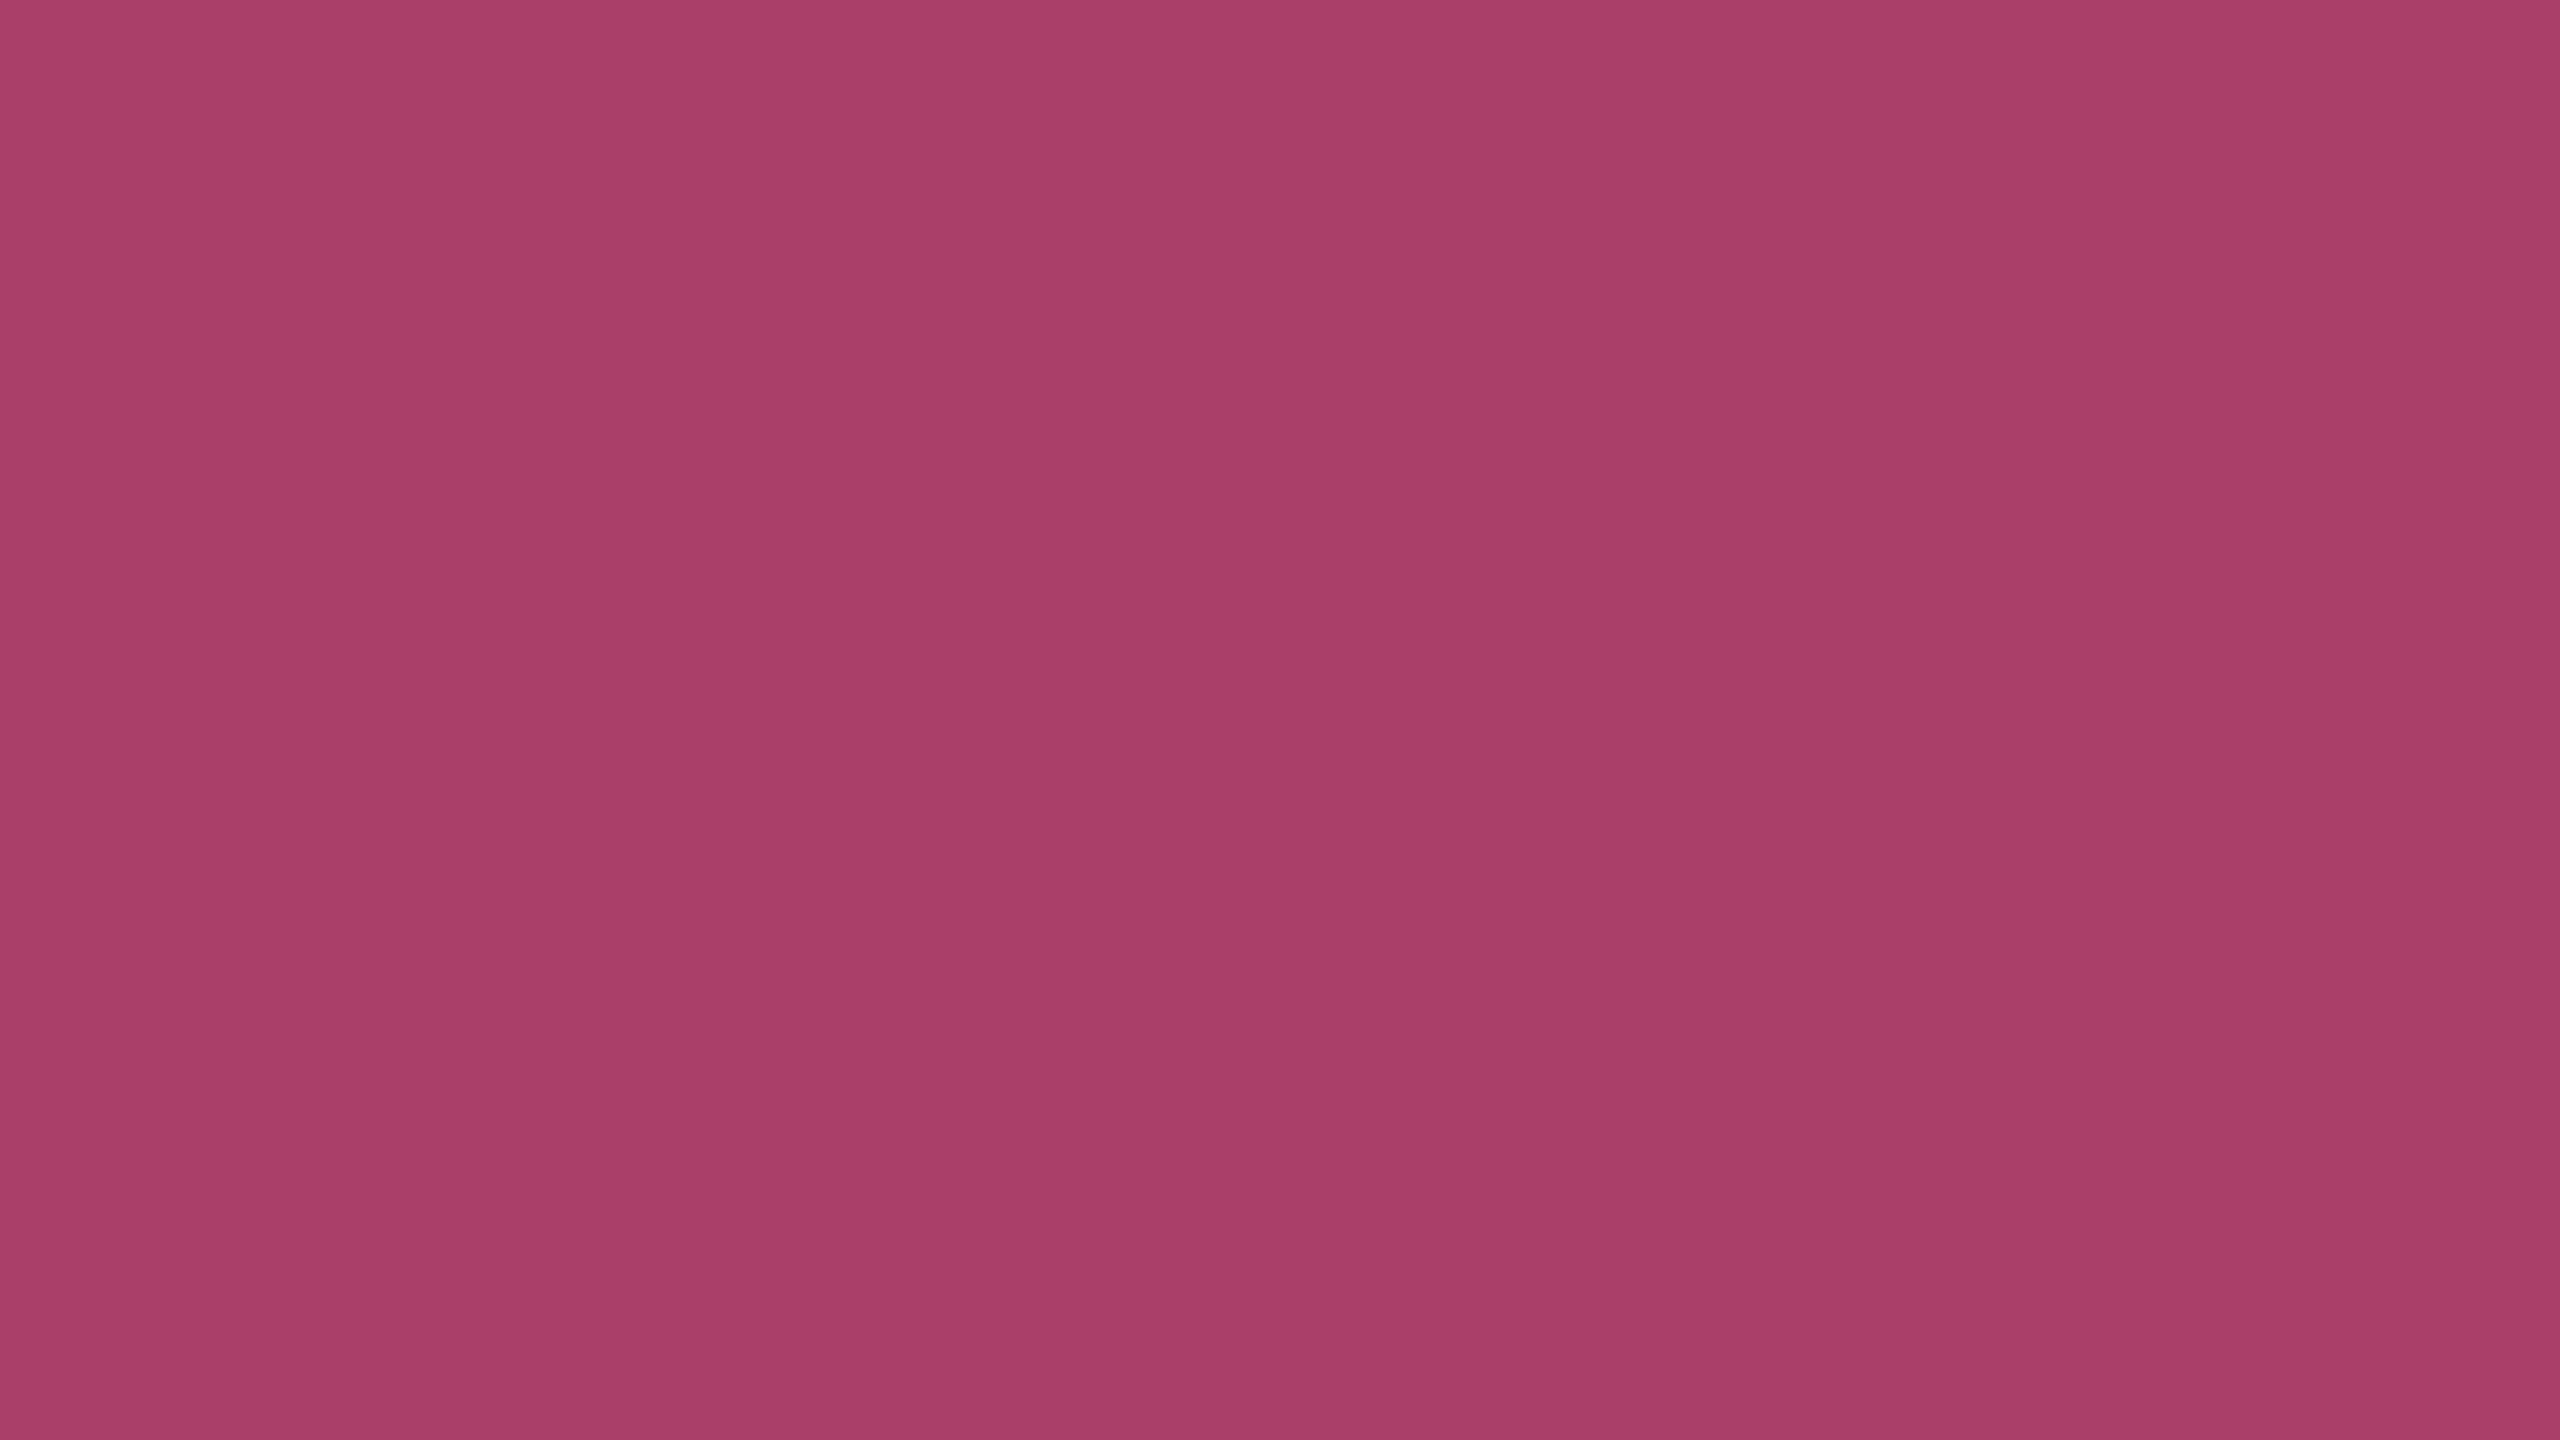 2560x1440 Medium Ruby Solid Color Background